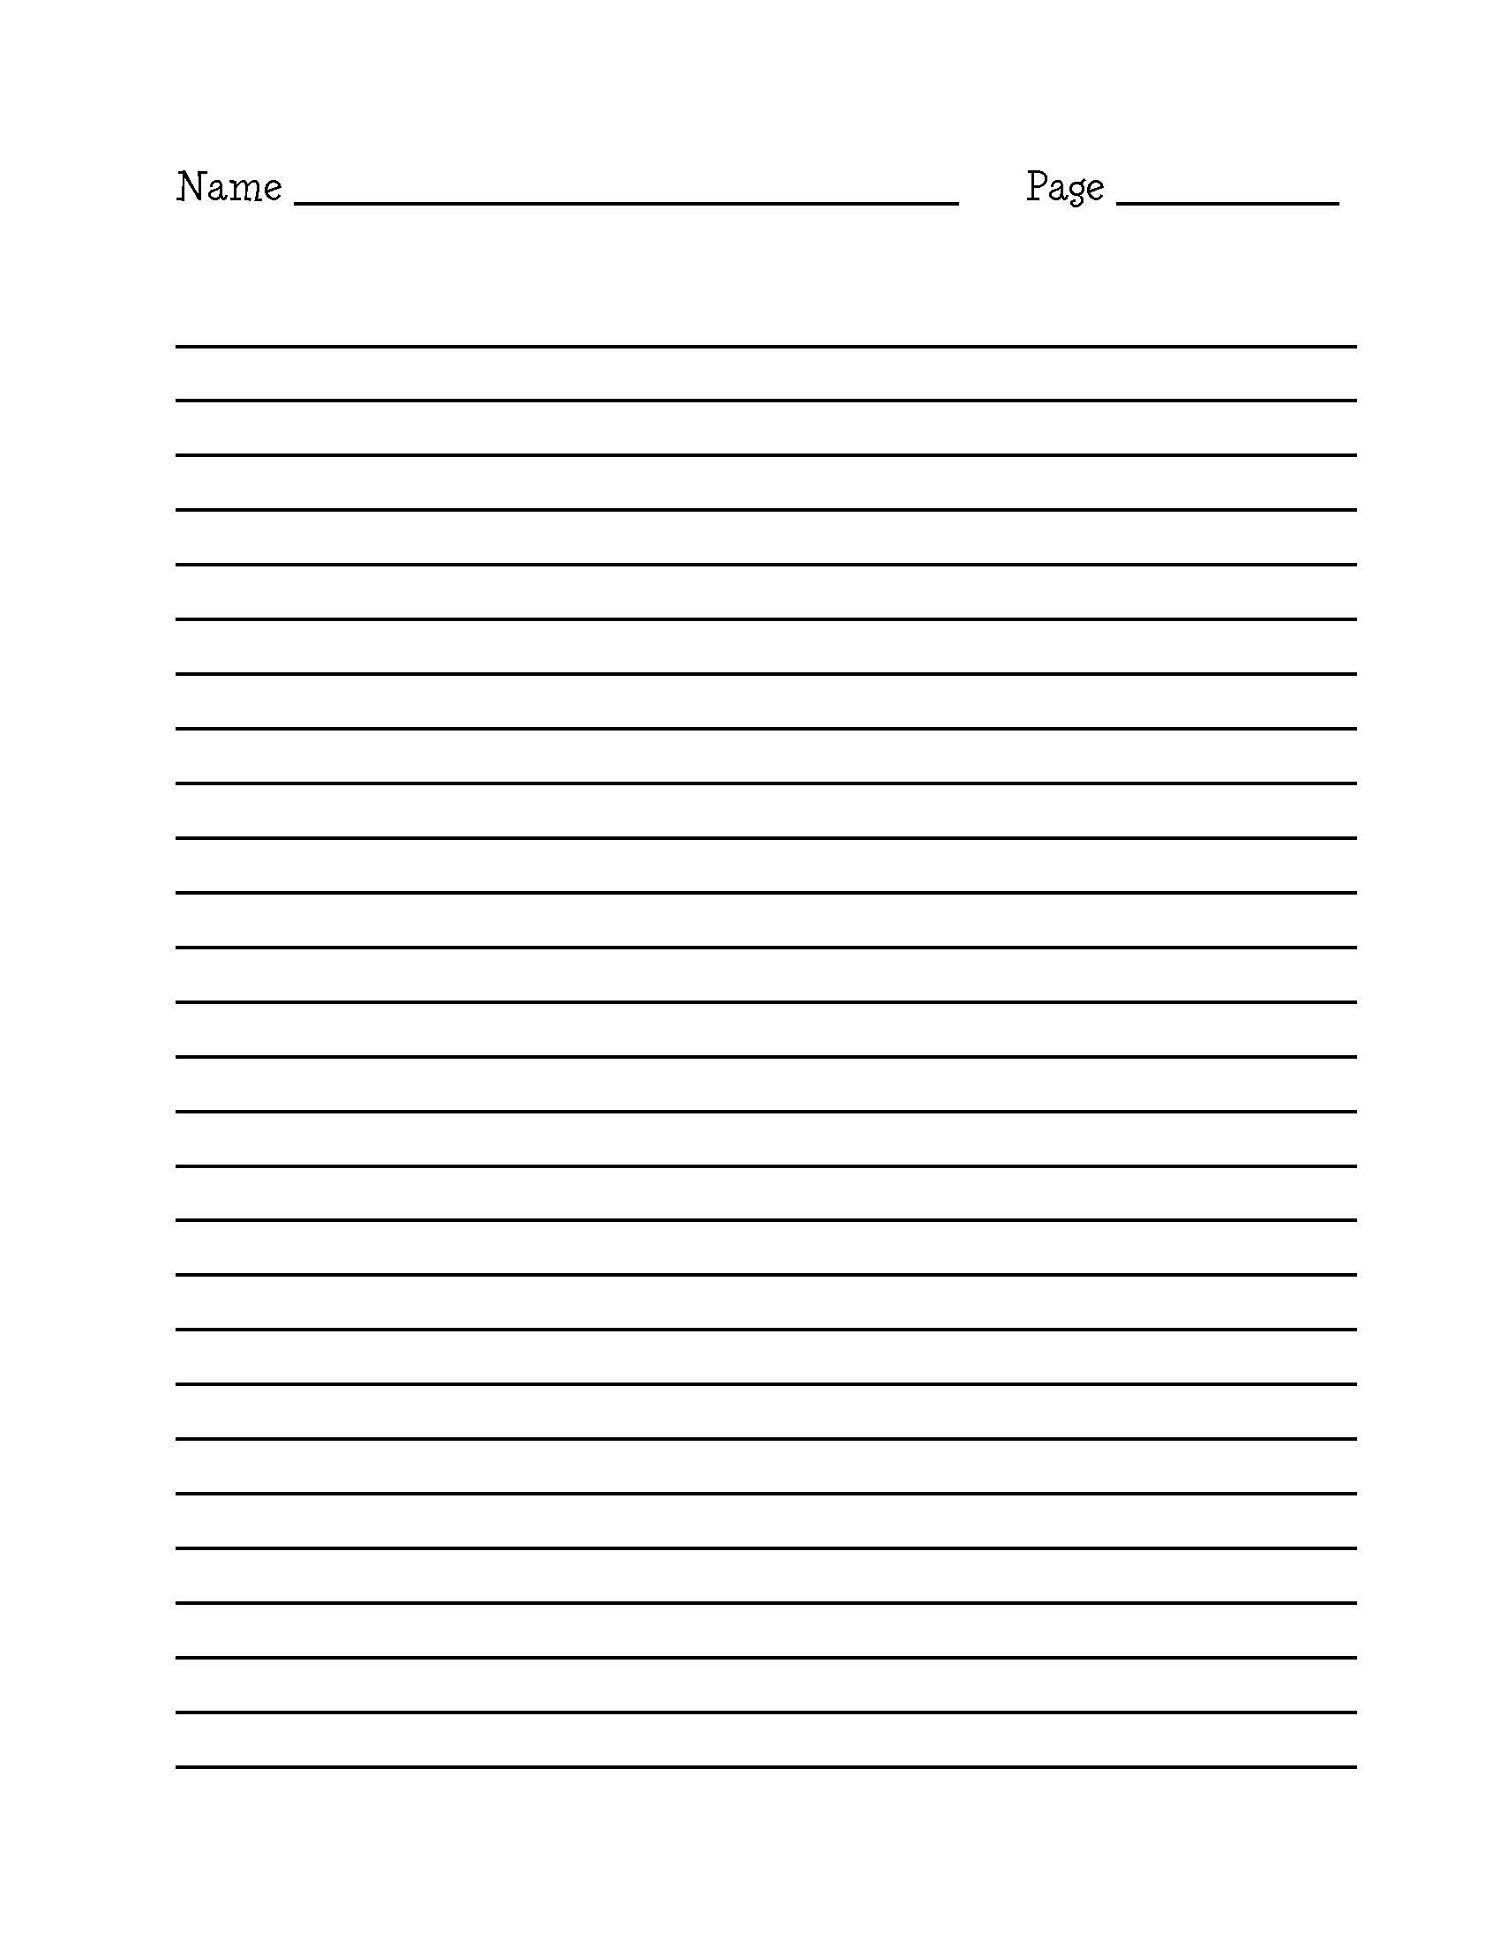 Lined Paper For Writing For Cute Writing Paper | Dear Joya  Lined Page Template